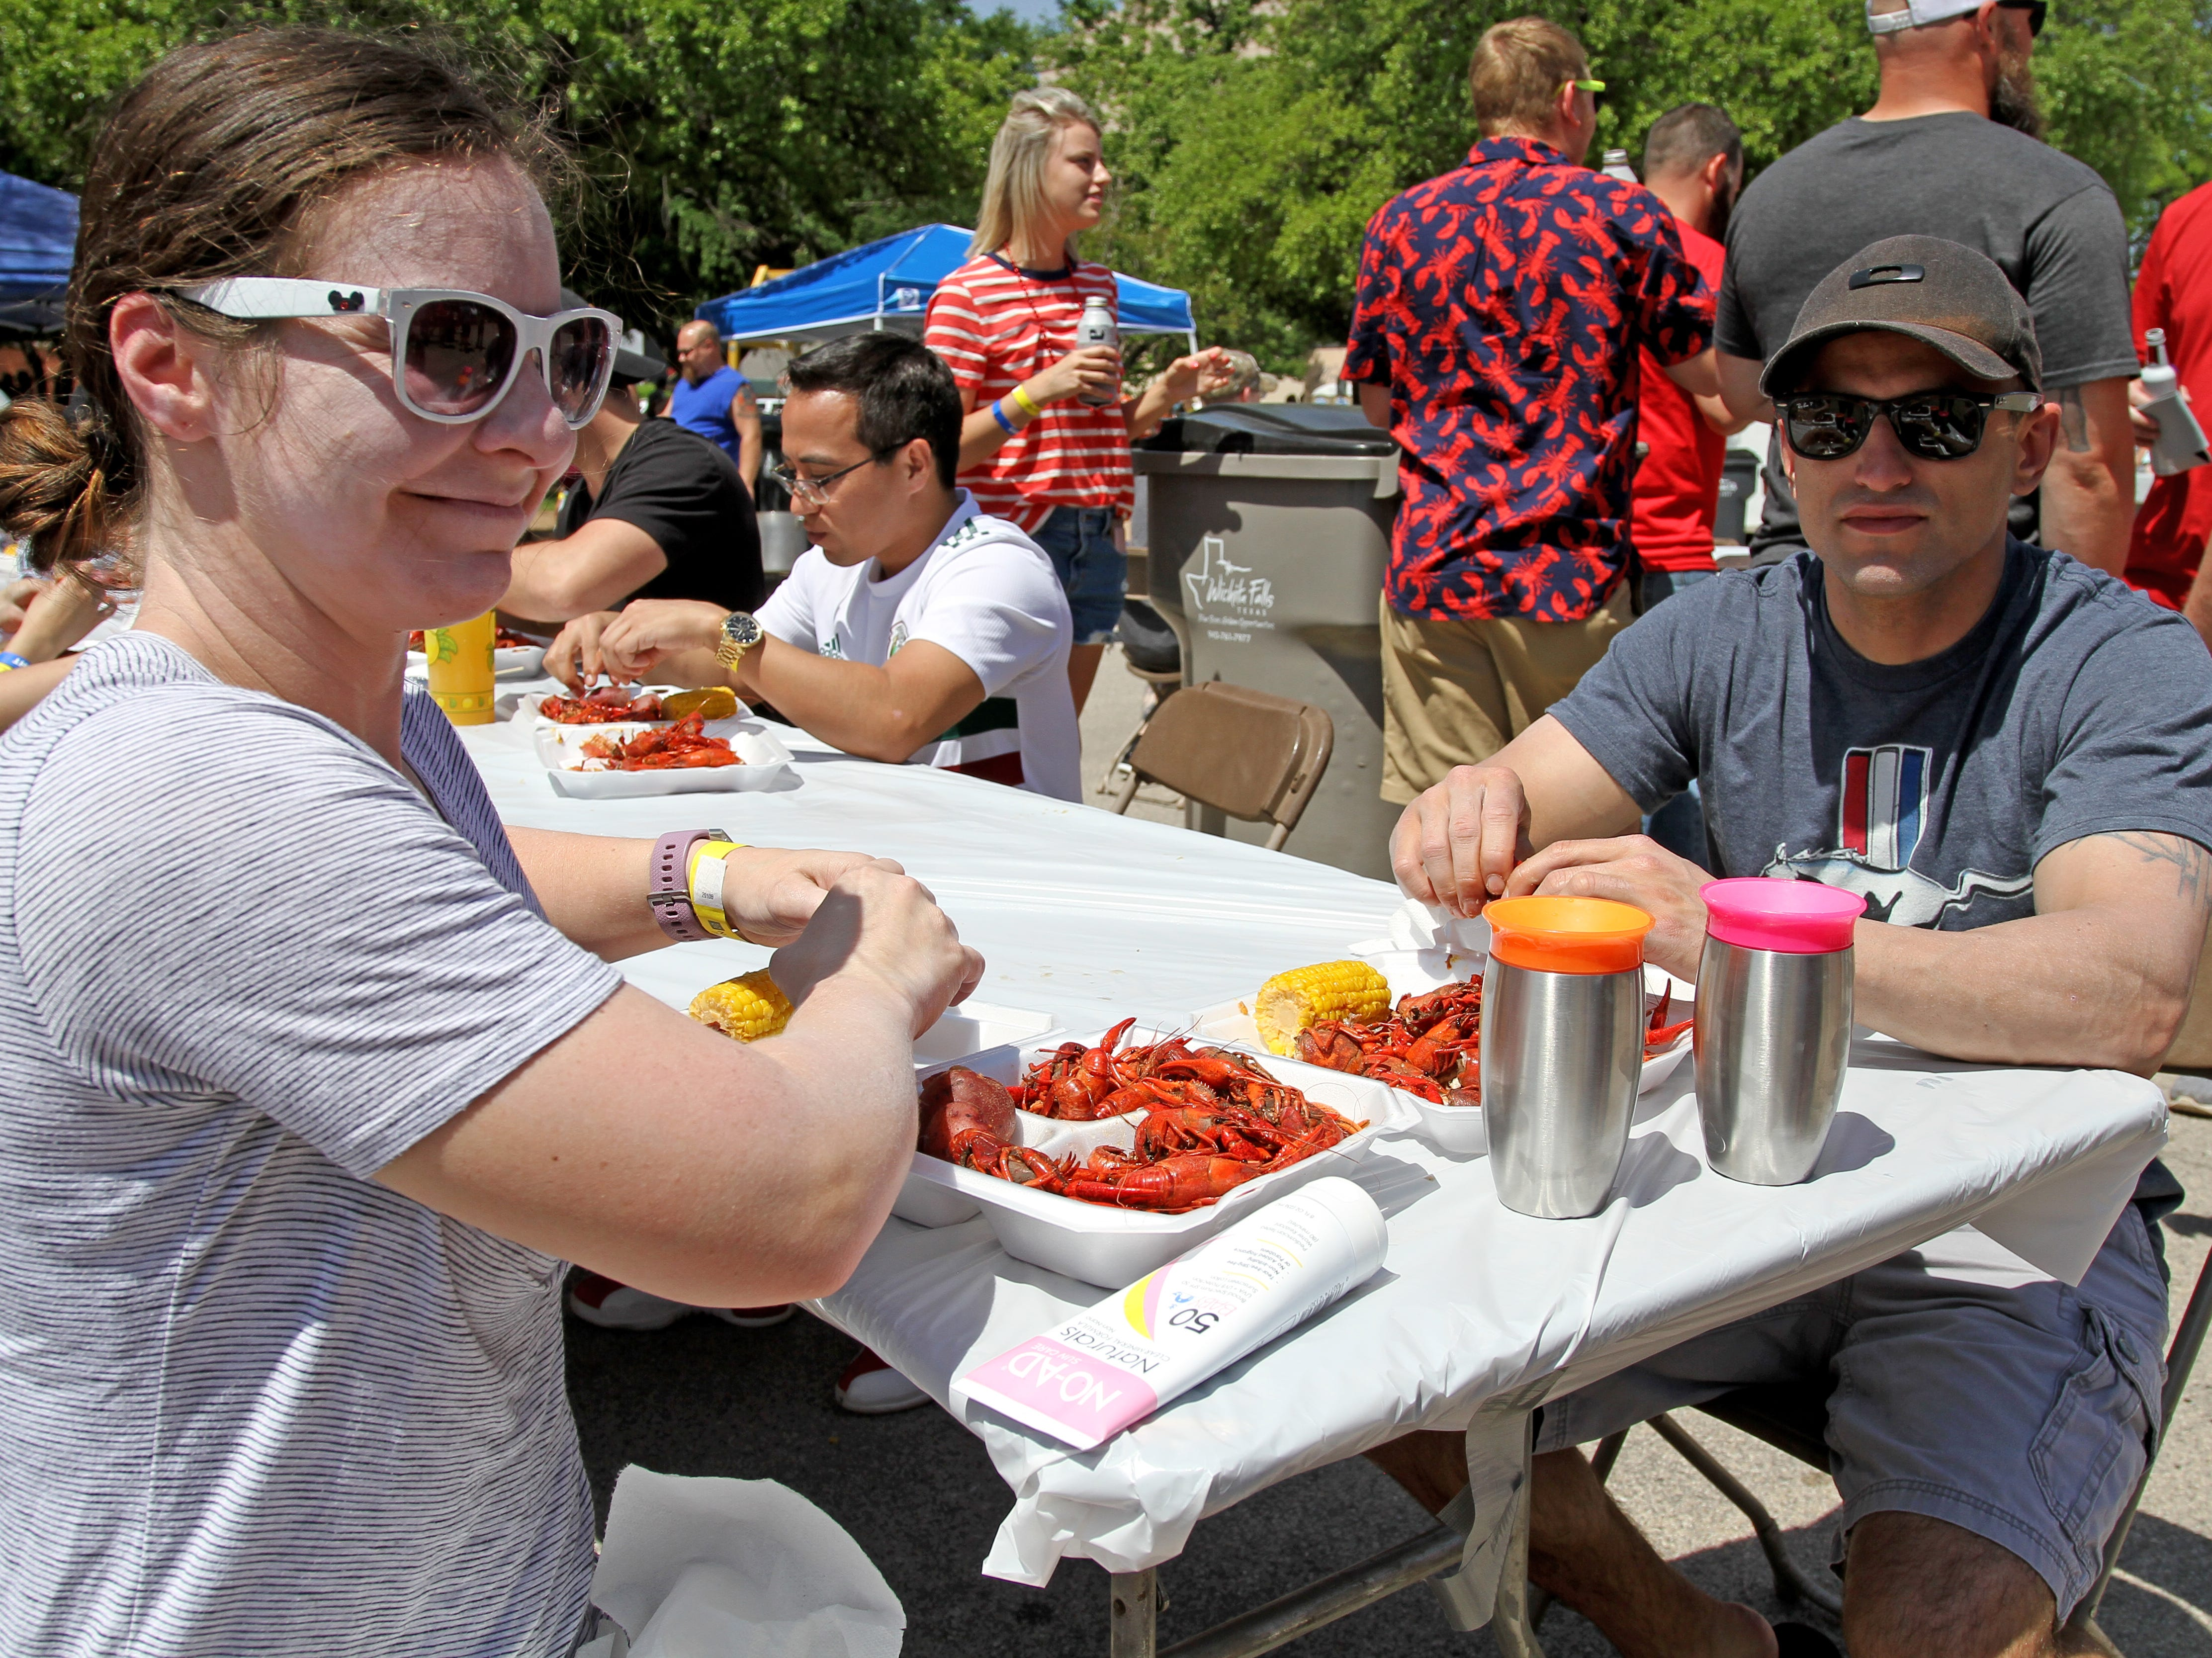 Emily, left, and Derek McLemore eat crawfish at Cajun Fest Saturday, April 27, 2019, at 10th and Ohio downtown. The McLemore's are from Louisana and said it's great to have a taste of home.